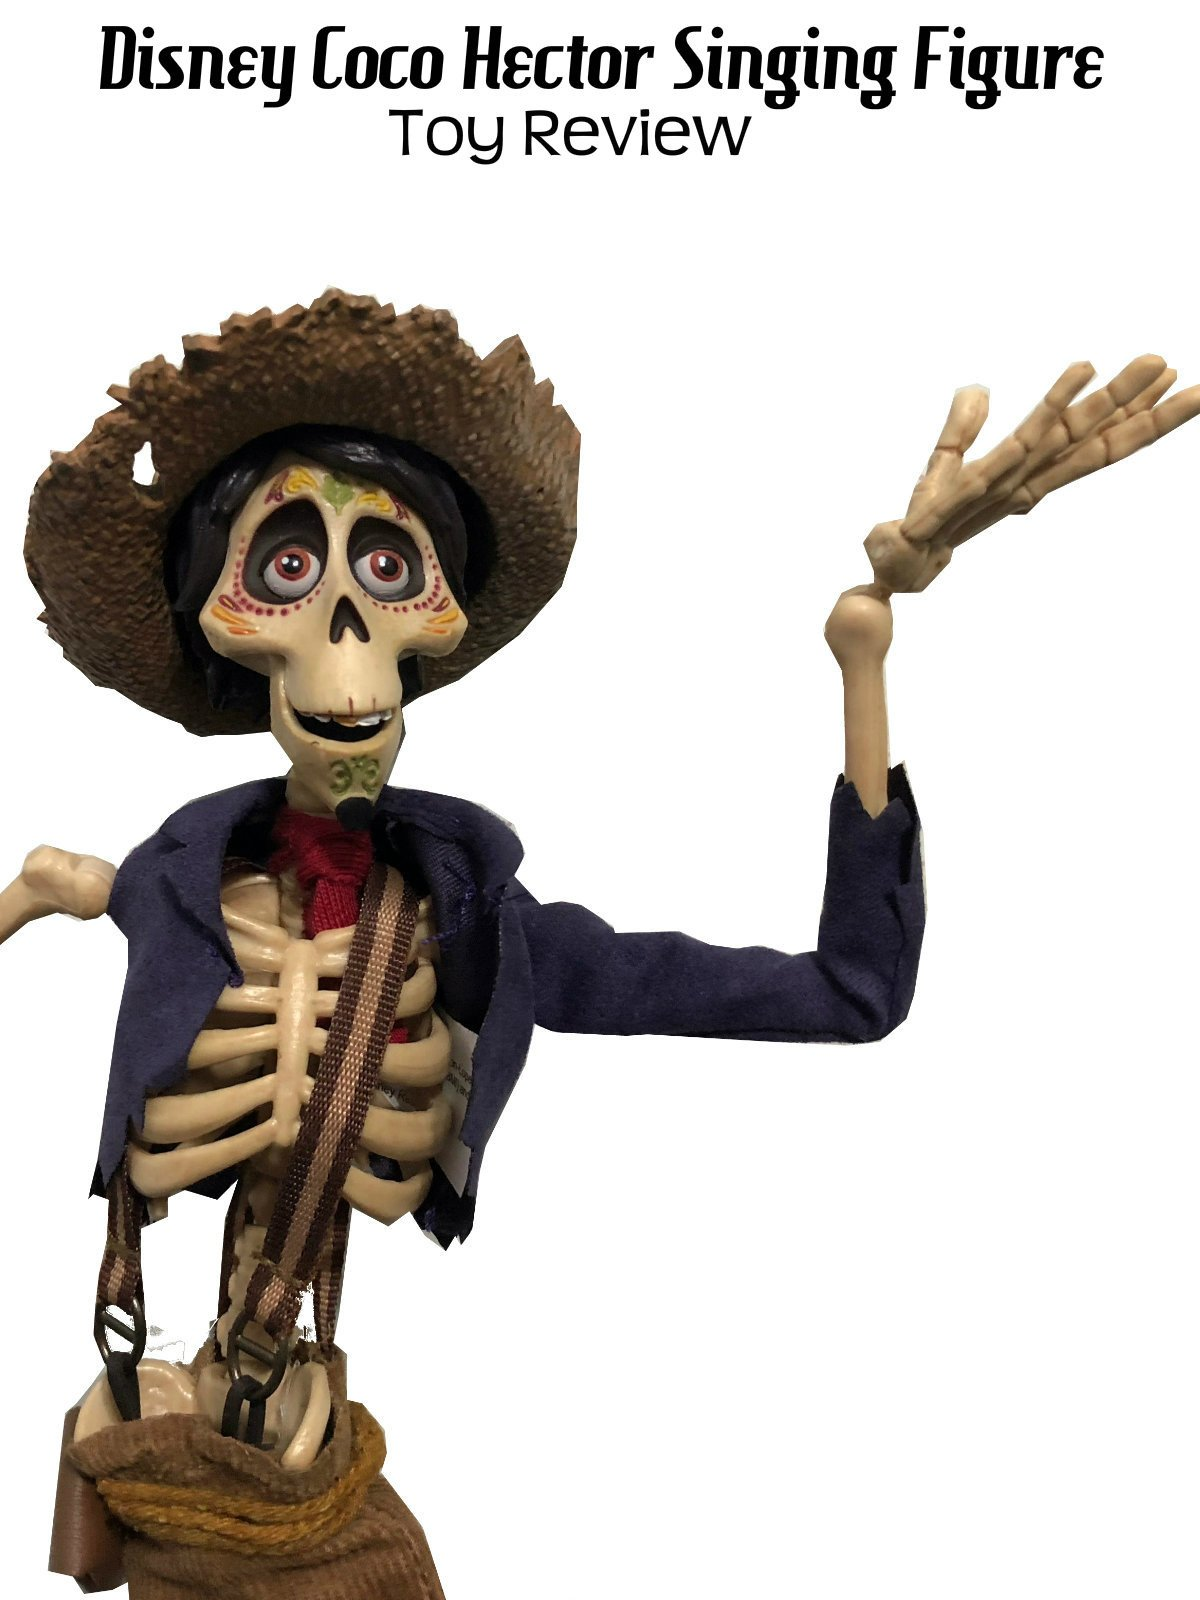 Review: Disney Coco Hector Singing Figure Toy Review